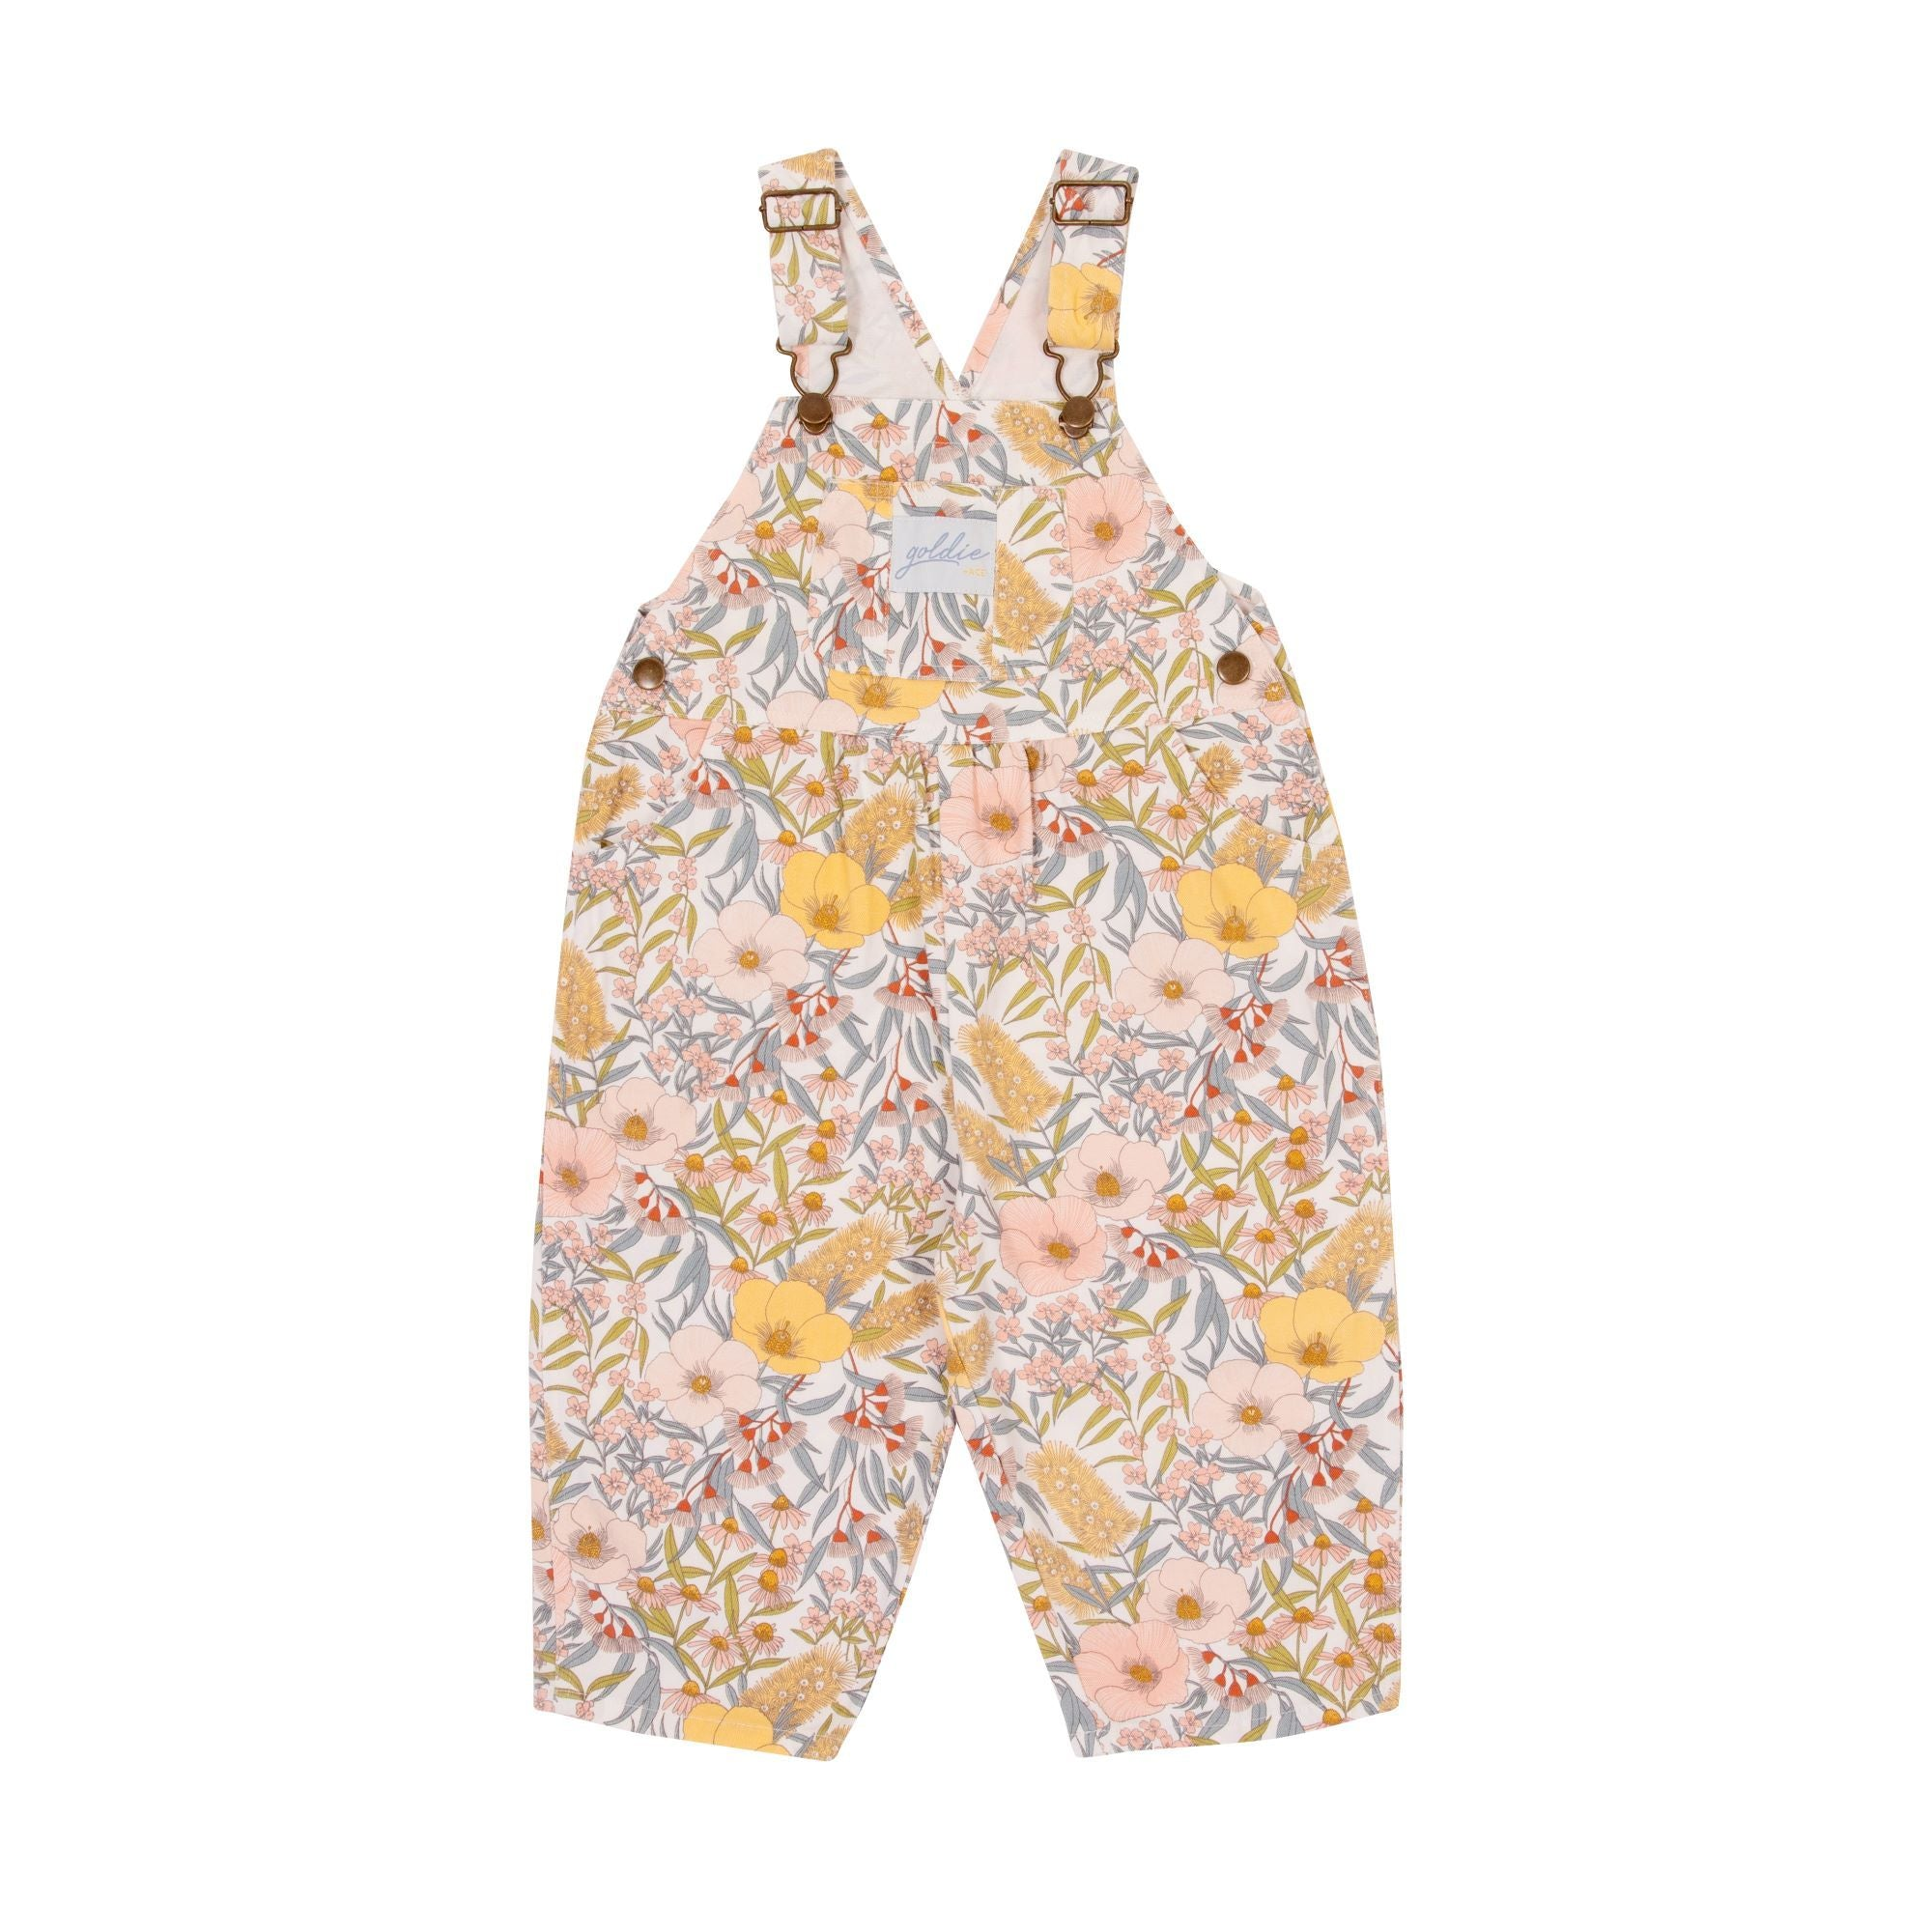 Ace Cotton Denim Overalls Vintage Floral